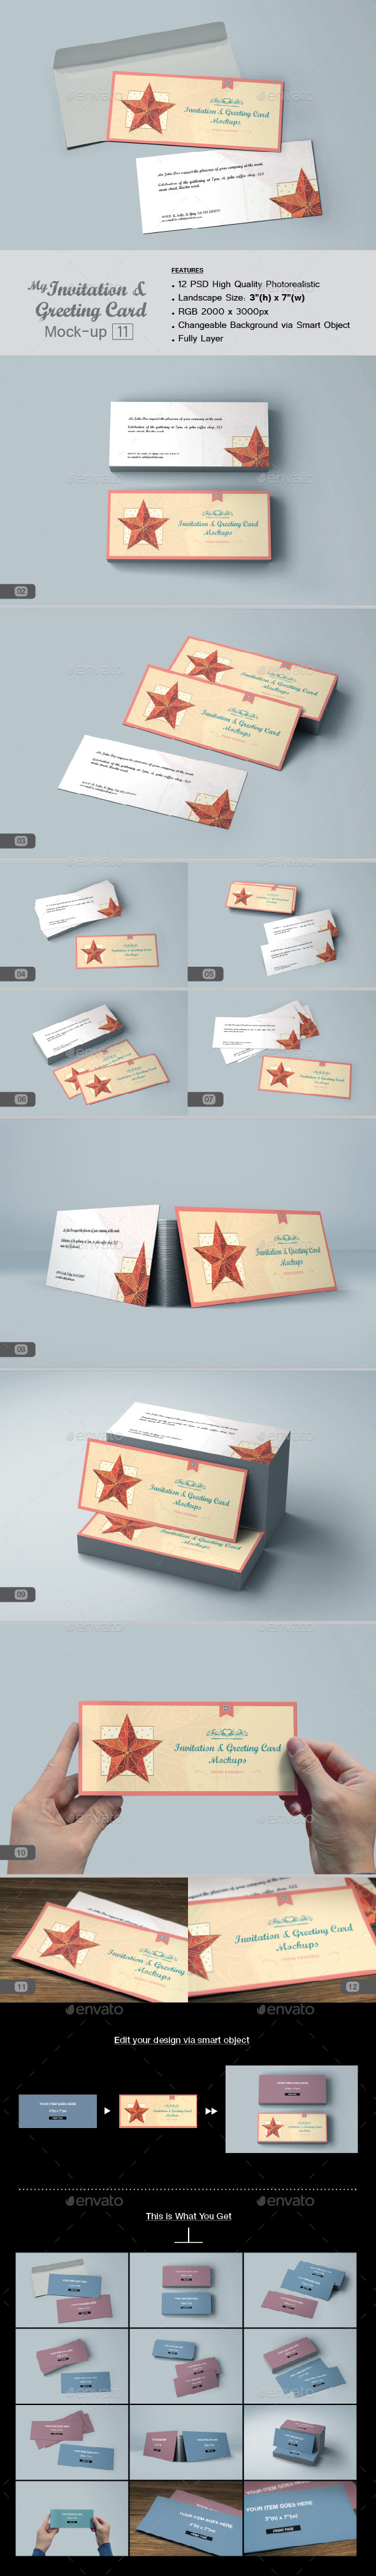 myGreeting Card Mock-up v11 - Print Product Mock-Ups